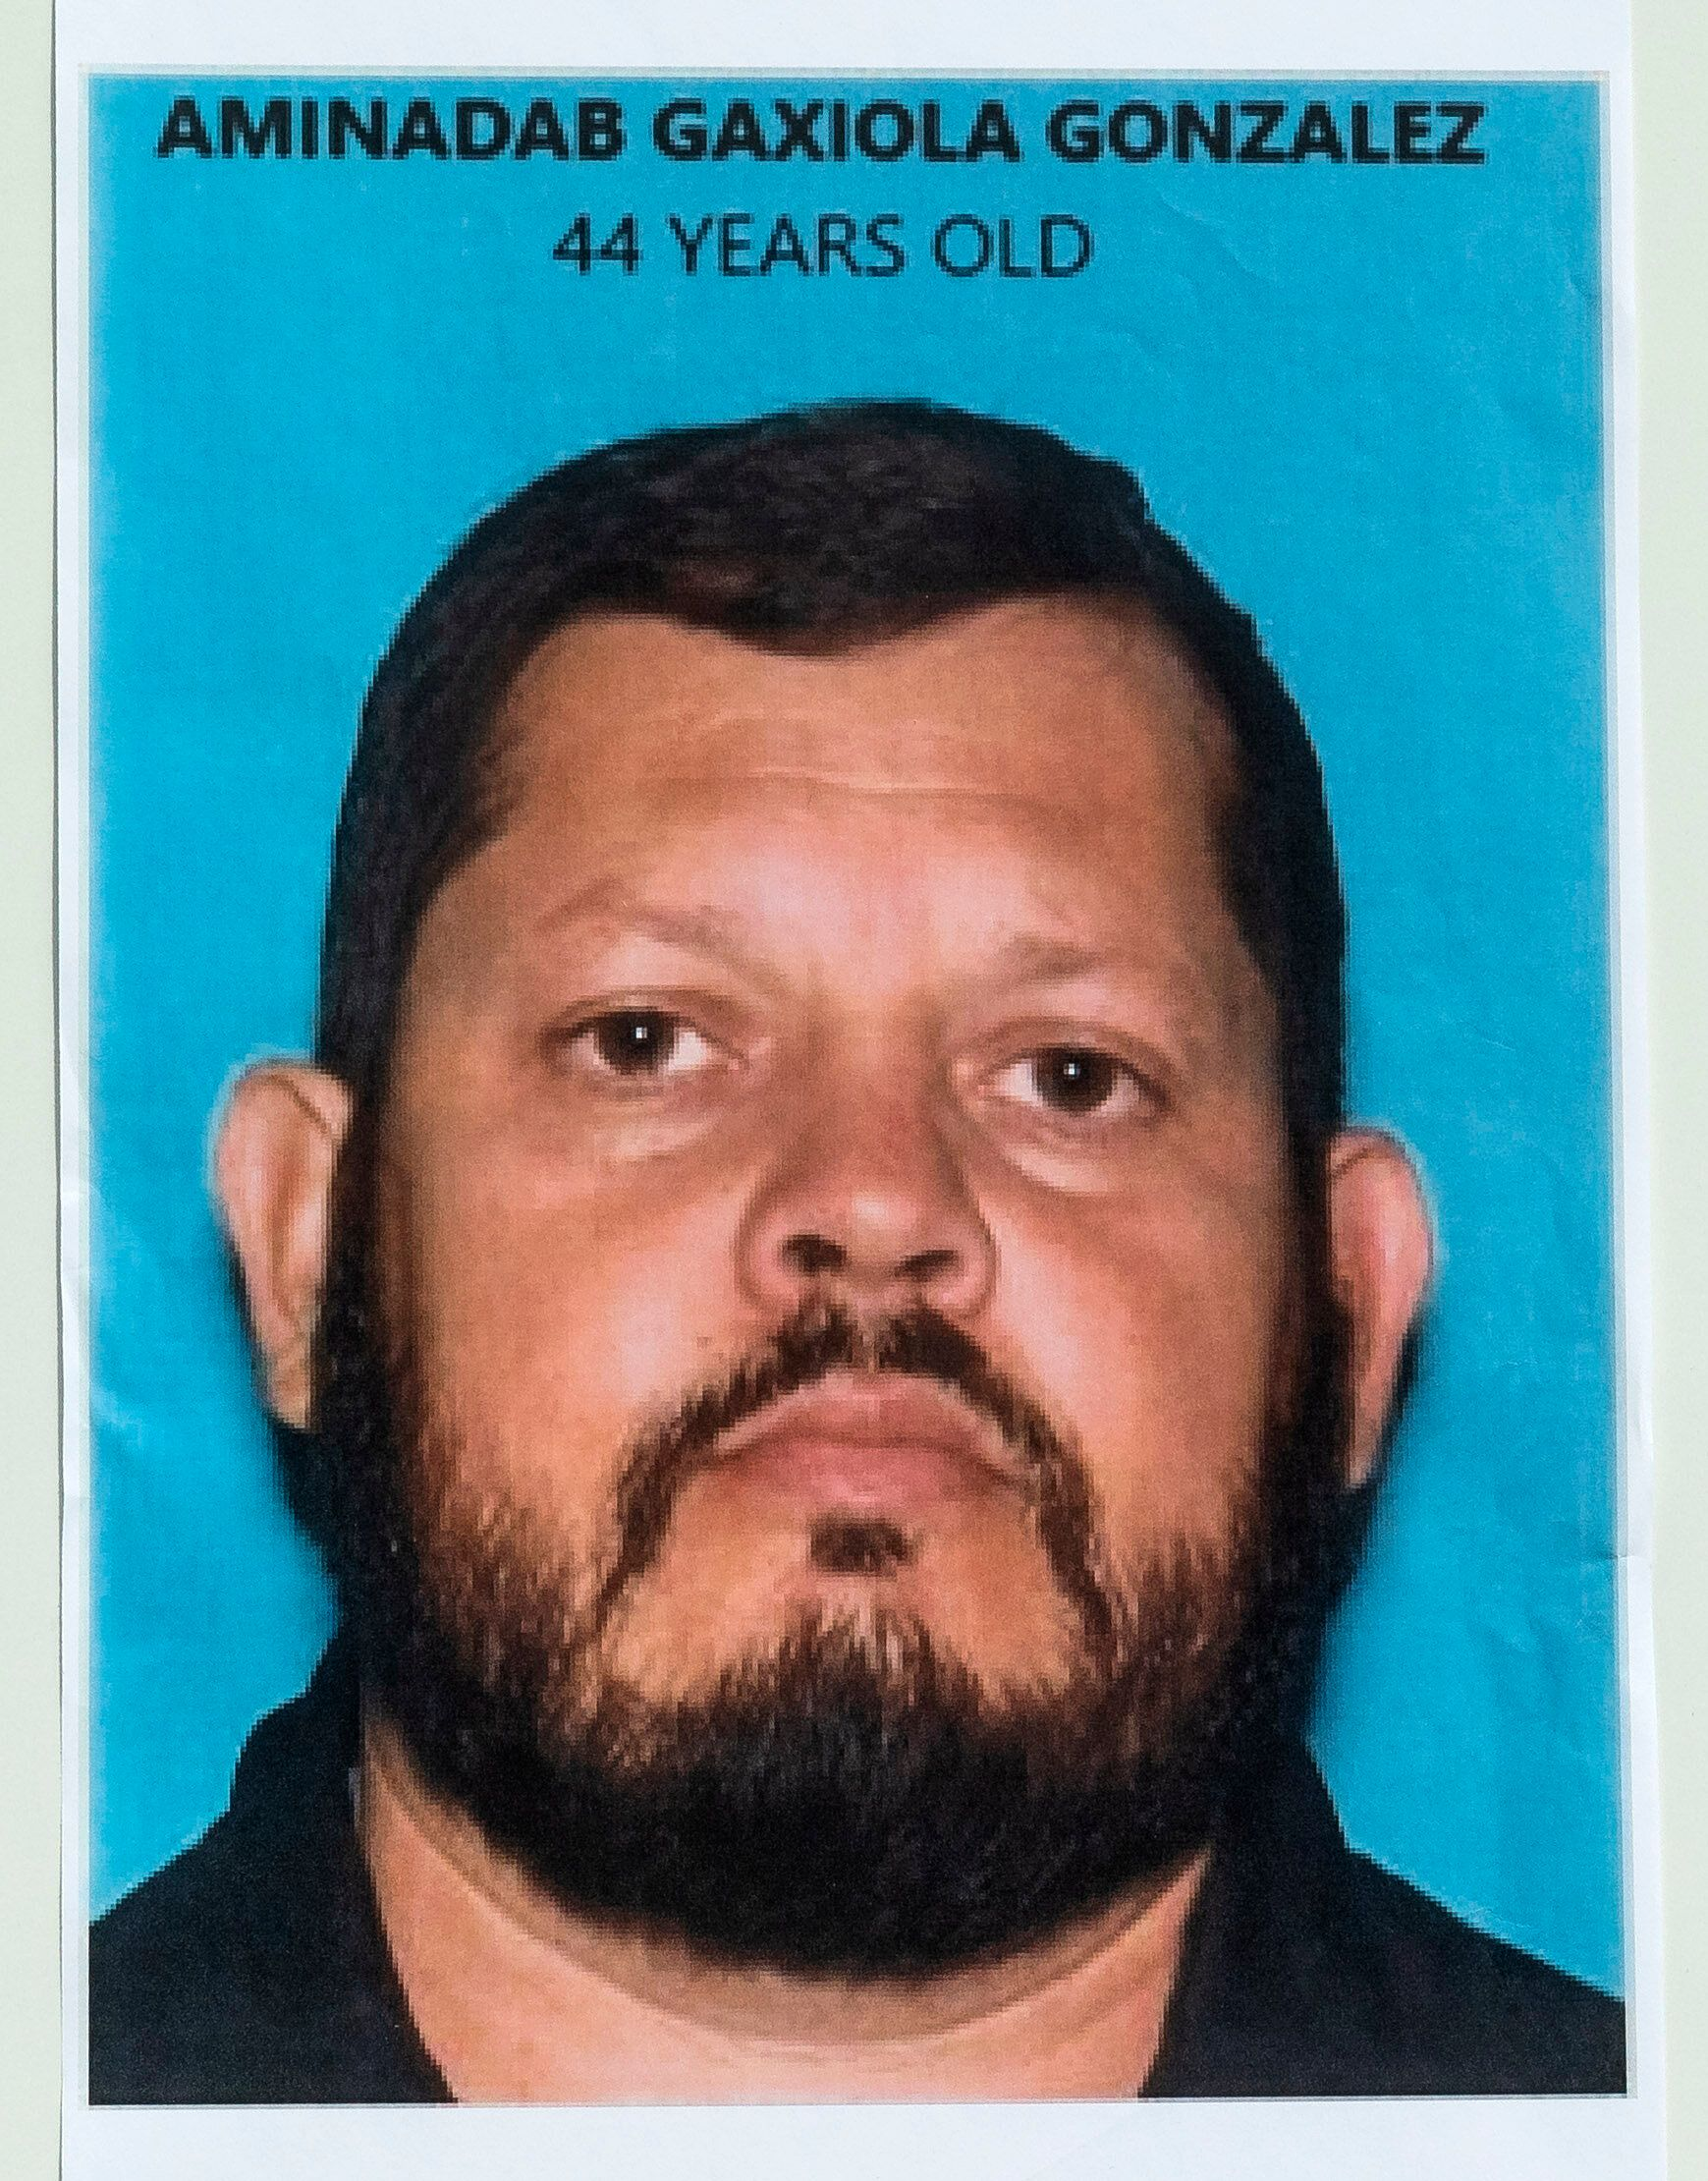 Orange police named Aminadab Gaxiola Gonzalez, 44, as the suspect in the mass shooting at an office building in Orange, Calif